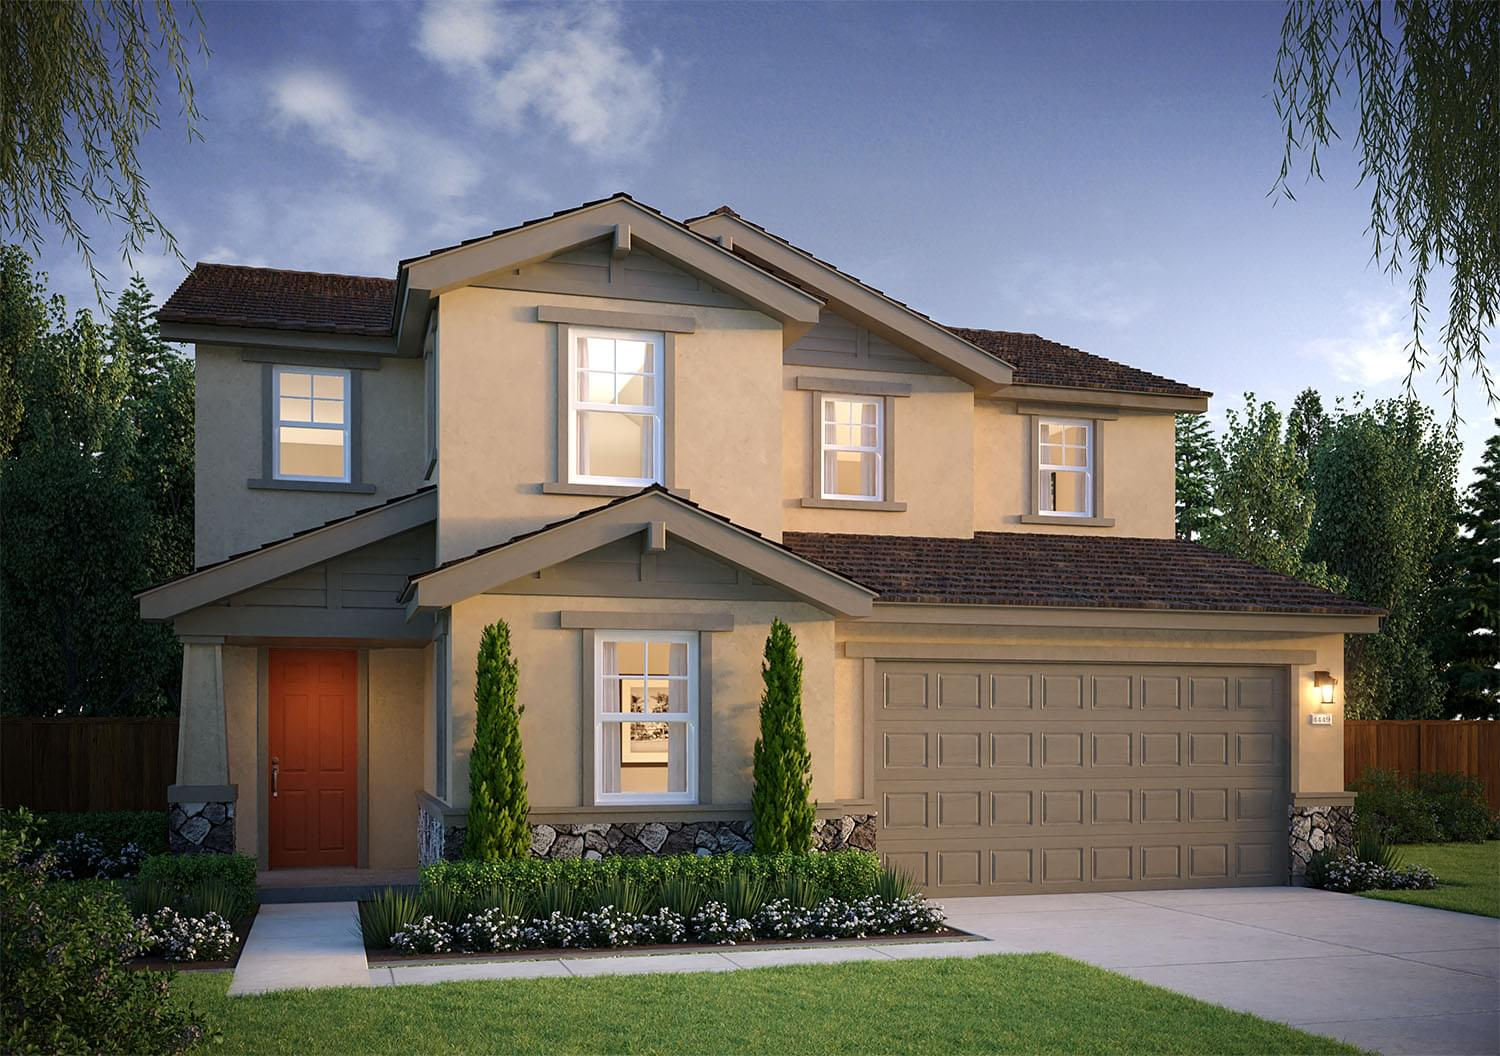 385 Thistle Street in Hollister, CA by DeNova Homes